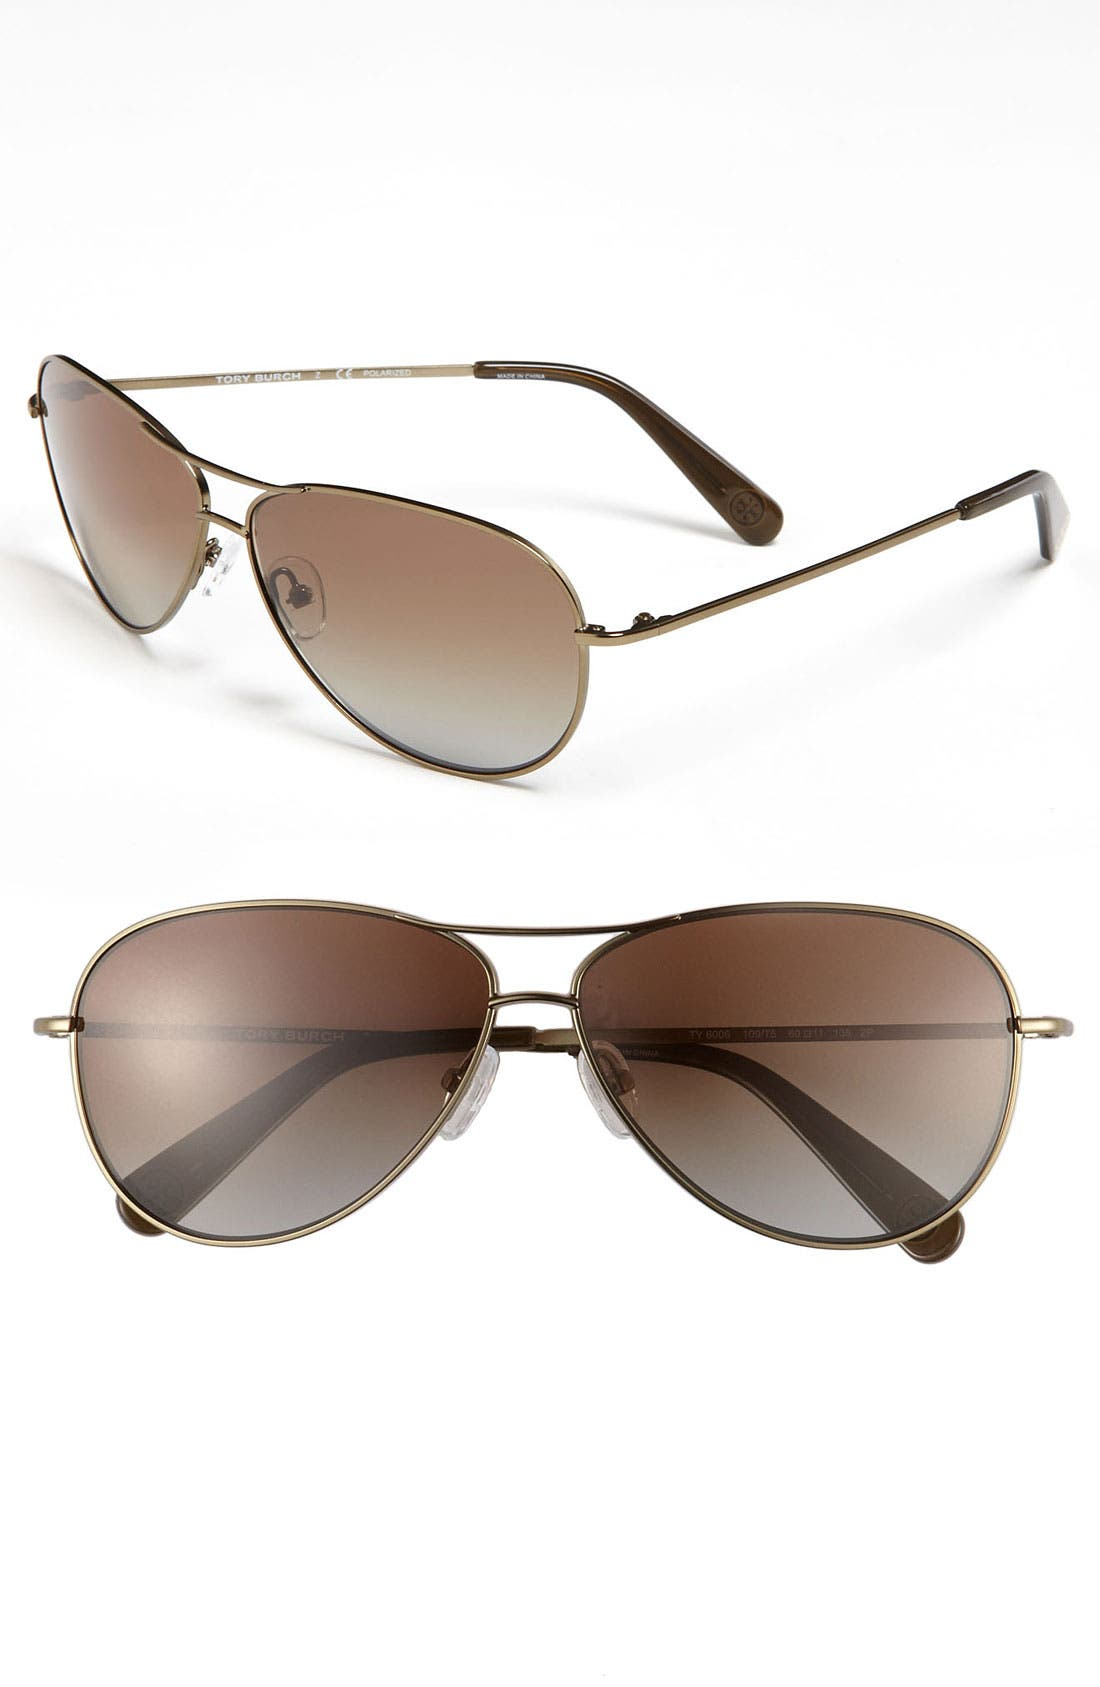 Alternate Image 1 Selected - Tory Burch 60mm Polarized Aviator Sunglasses